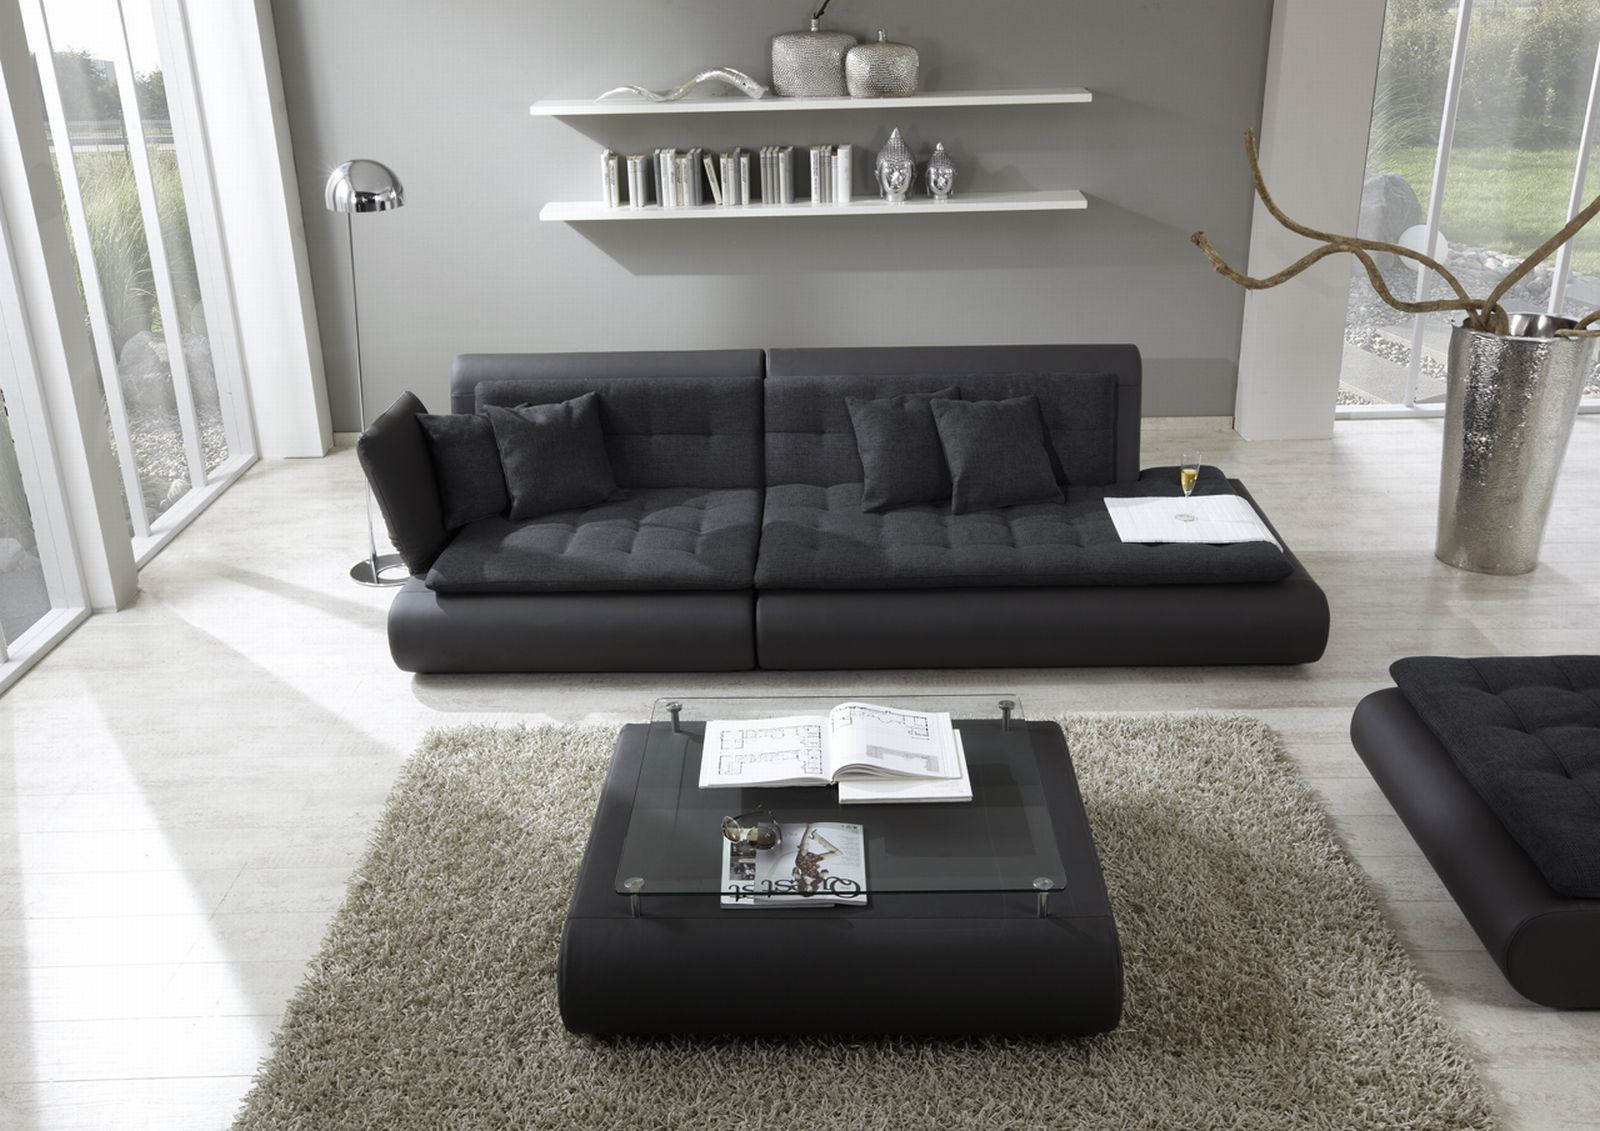 dreisitzer sofa couch 3 sitzer stoffcouch stoffsofa modulsofa exit two stoffmix ebay. Black Bedroom Furniture Sets. Home Design Ideas